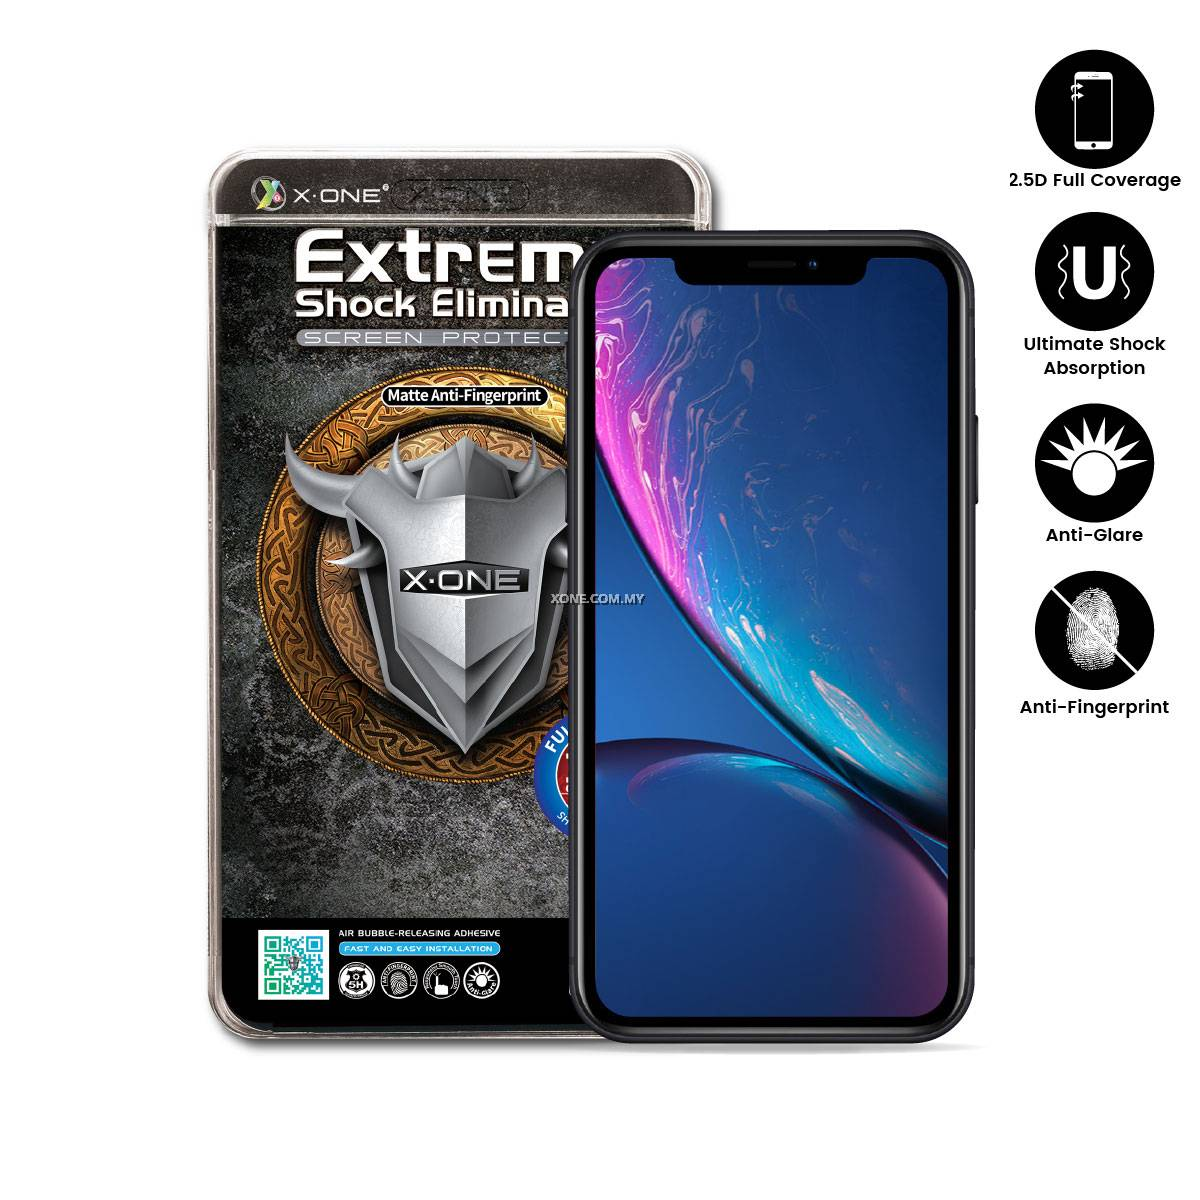 Apple Iphone Xr 6 1 Quot X One Full Coverage Matte Film Screen Protector Authorised X One 174 Distributor Malaysia